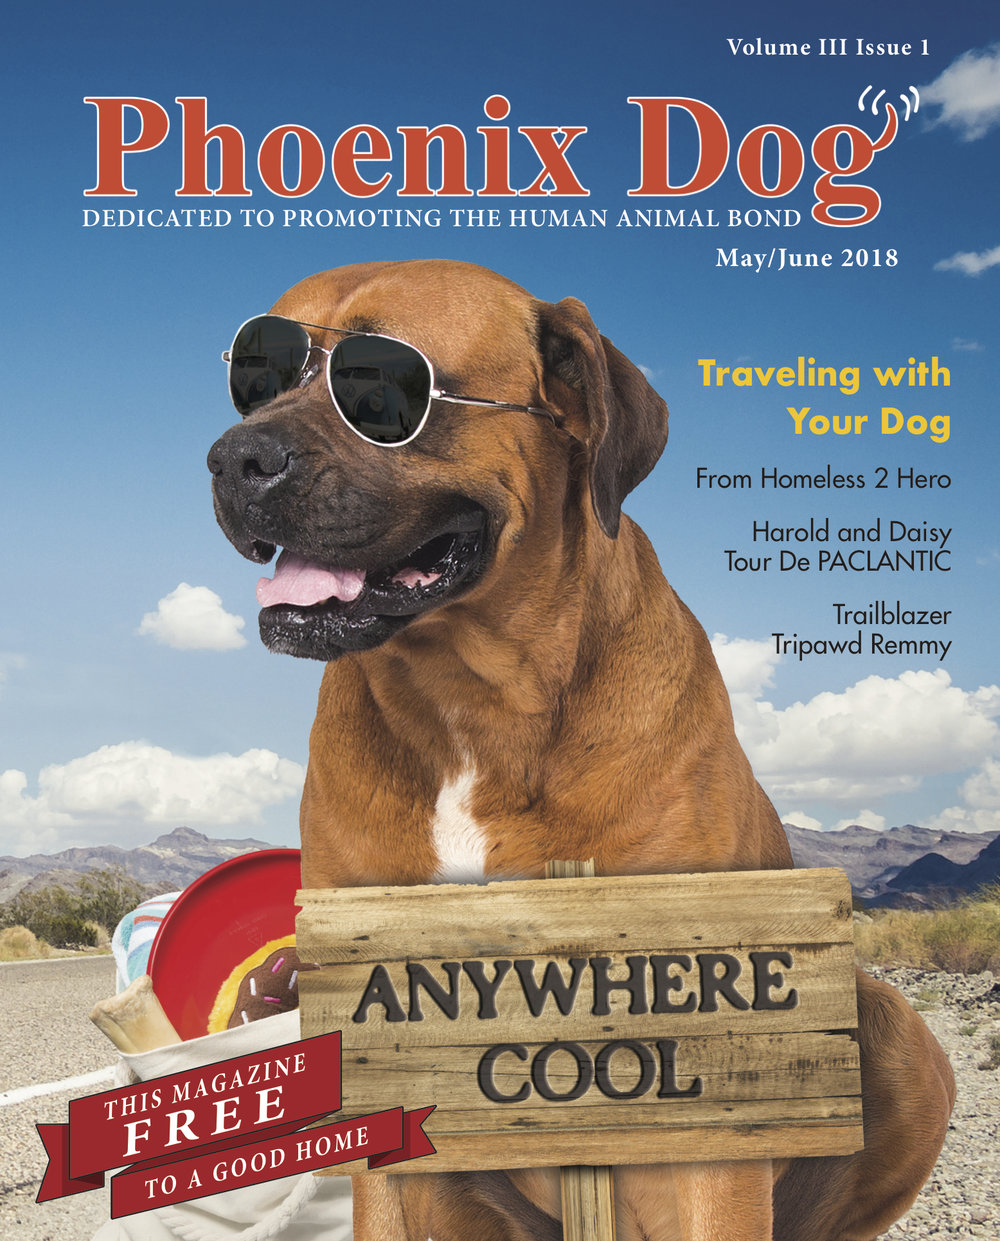 Phx Dog may-june 2018_hires 1 Cover.jpg